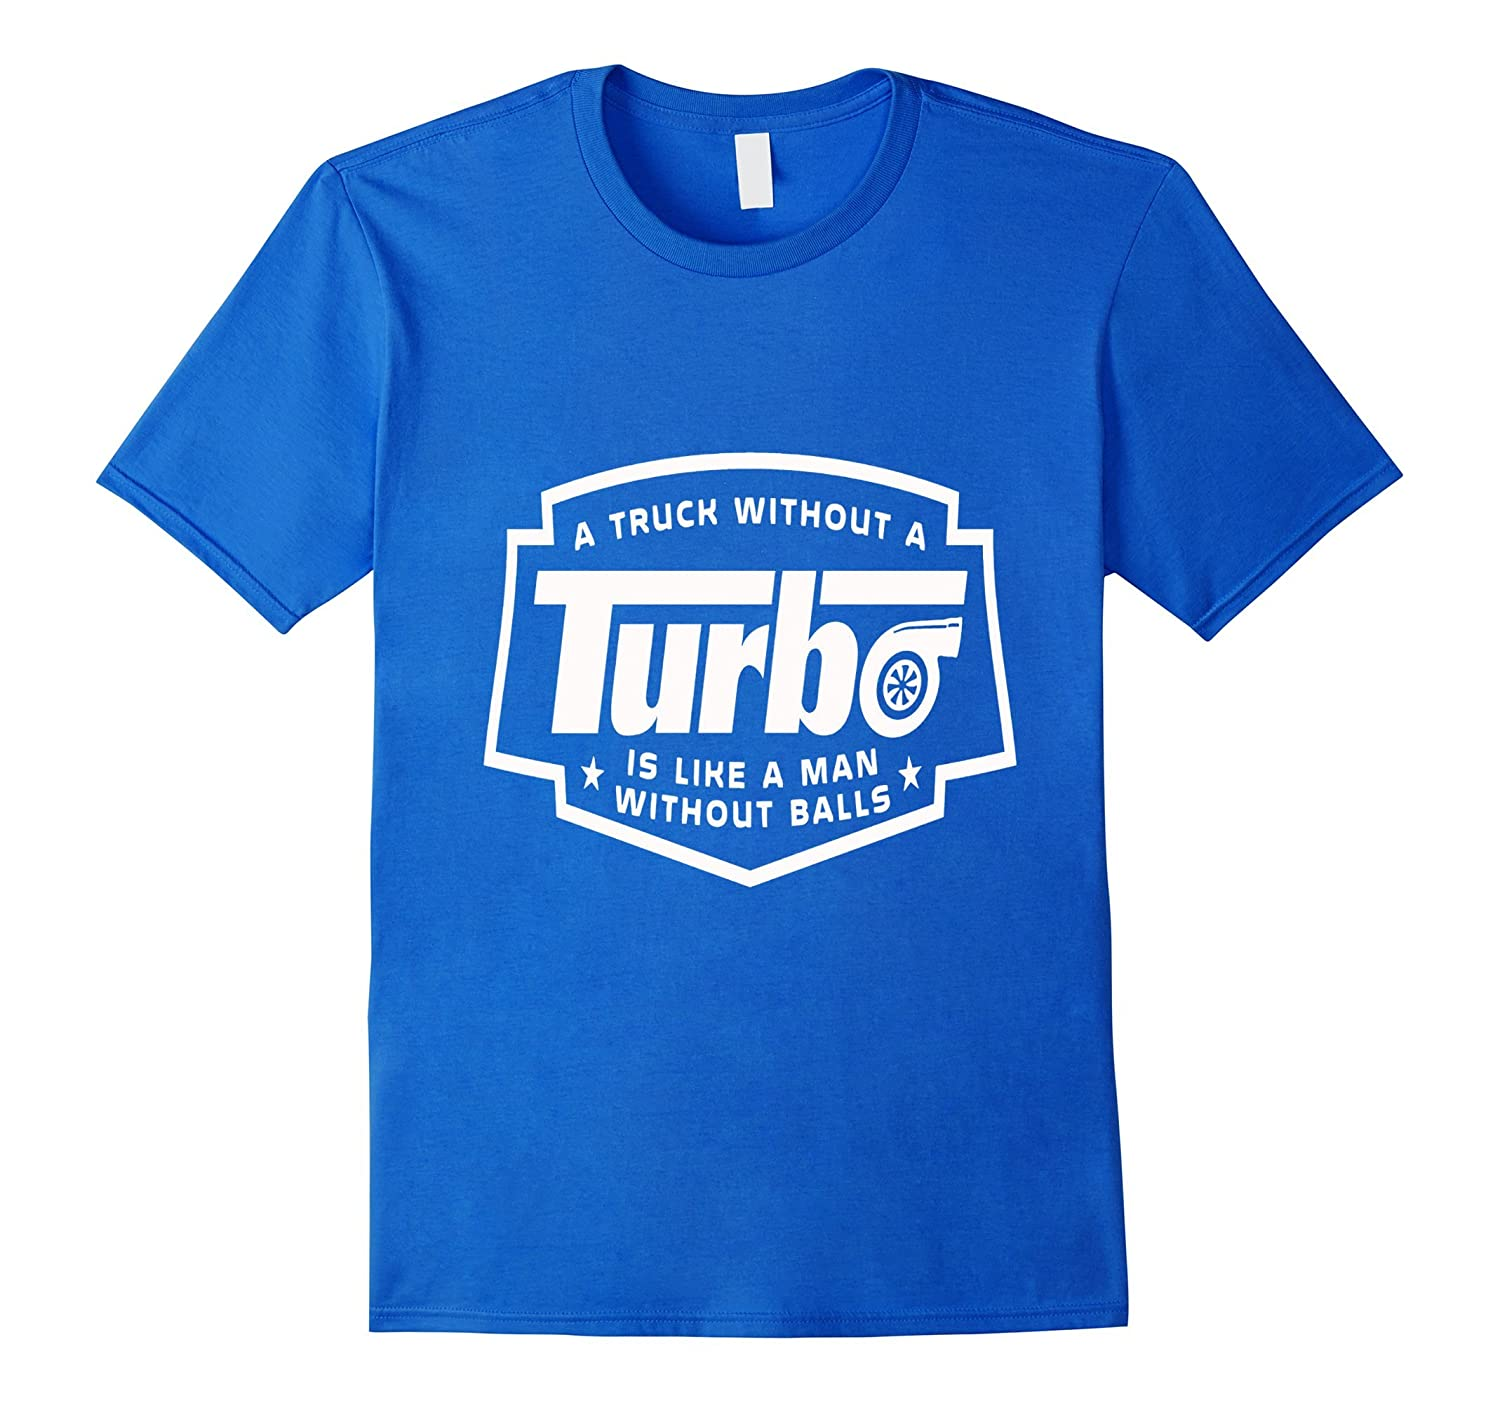 Amazon.com: A Truck without a Turbo is like a man without balls T-shirt: Clothing